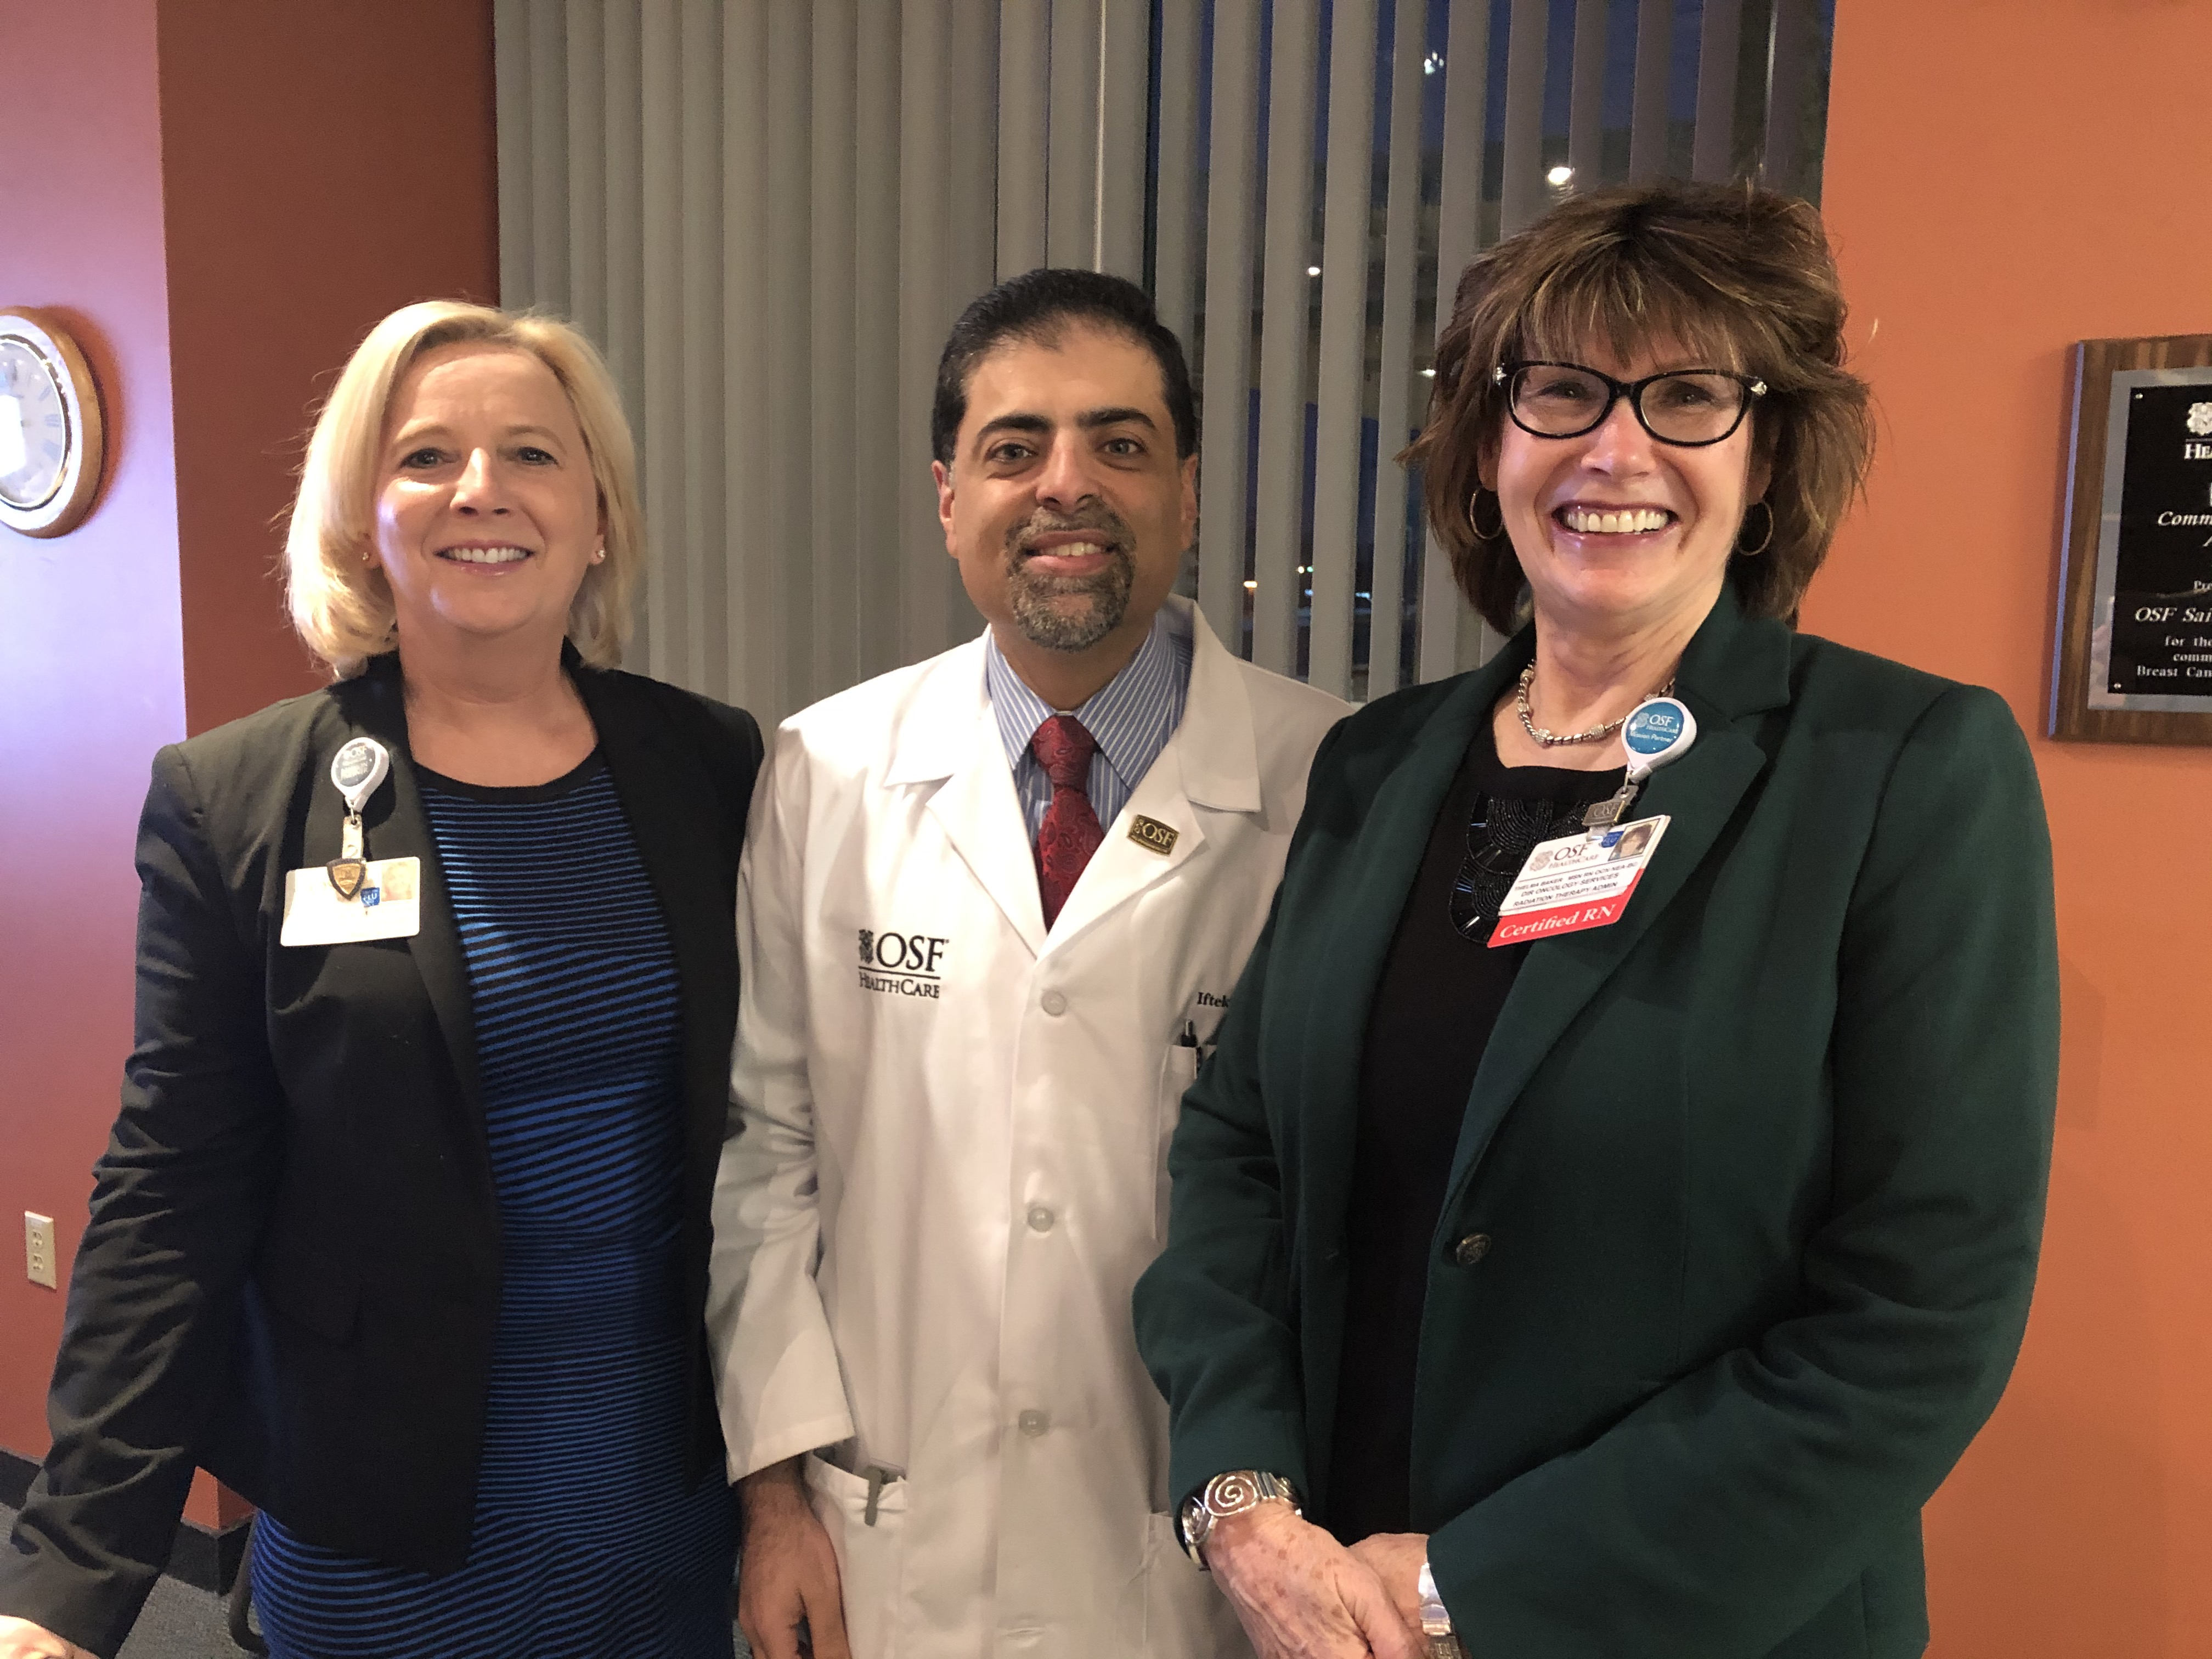 Paula Caryski, President,  OSF Health, Dr. Iftekhar Ahmad, Radiation Oncologist, and Thelma Baker, Director of Oncology